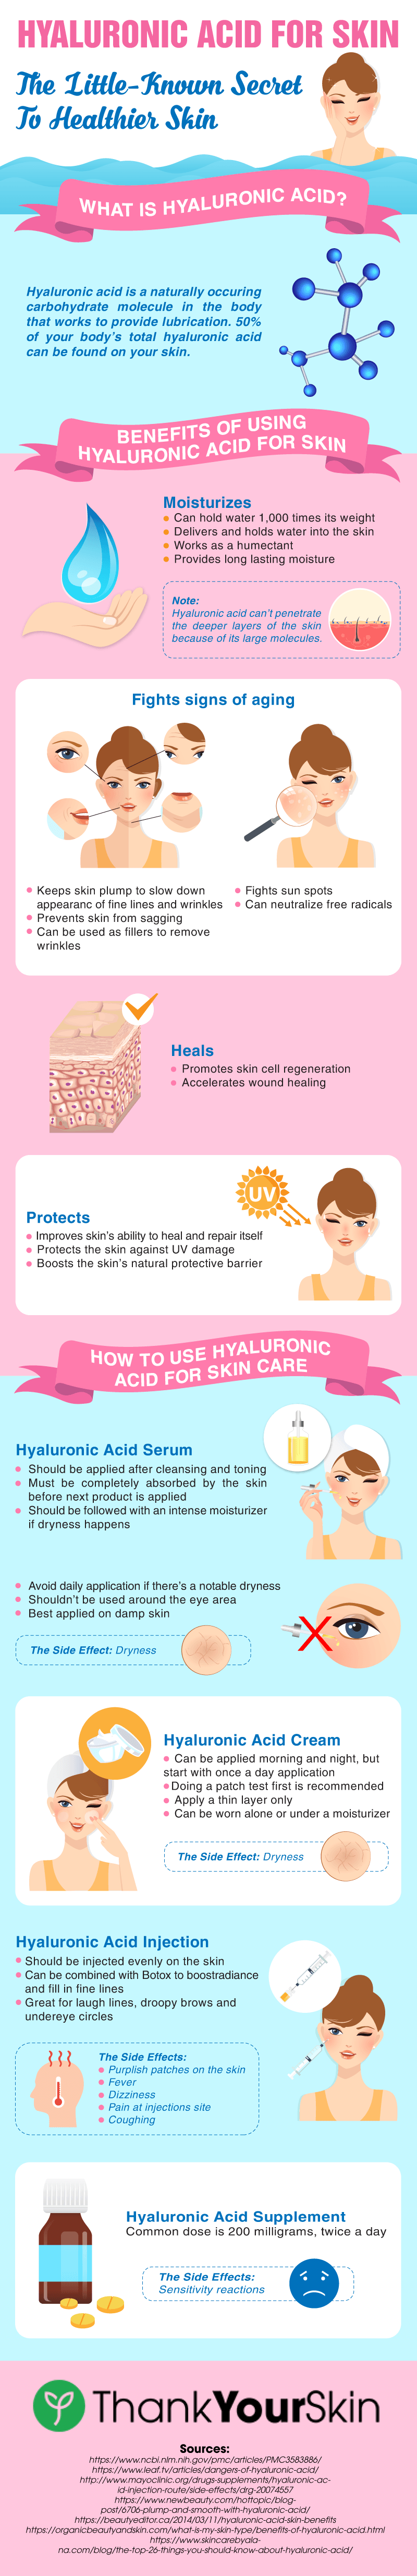 Guest Post – Thank Your Skin with Hyaluronic Acid!